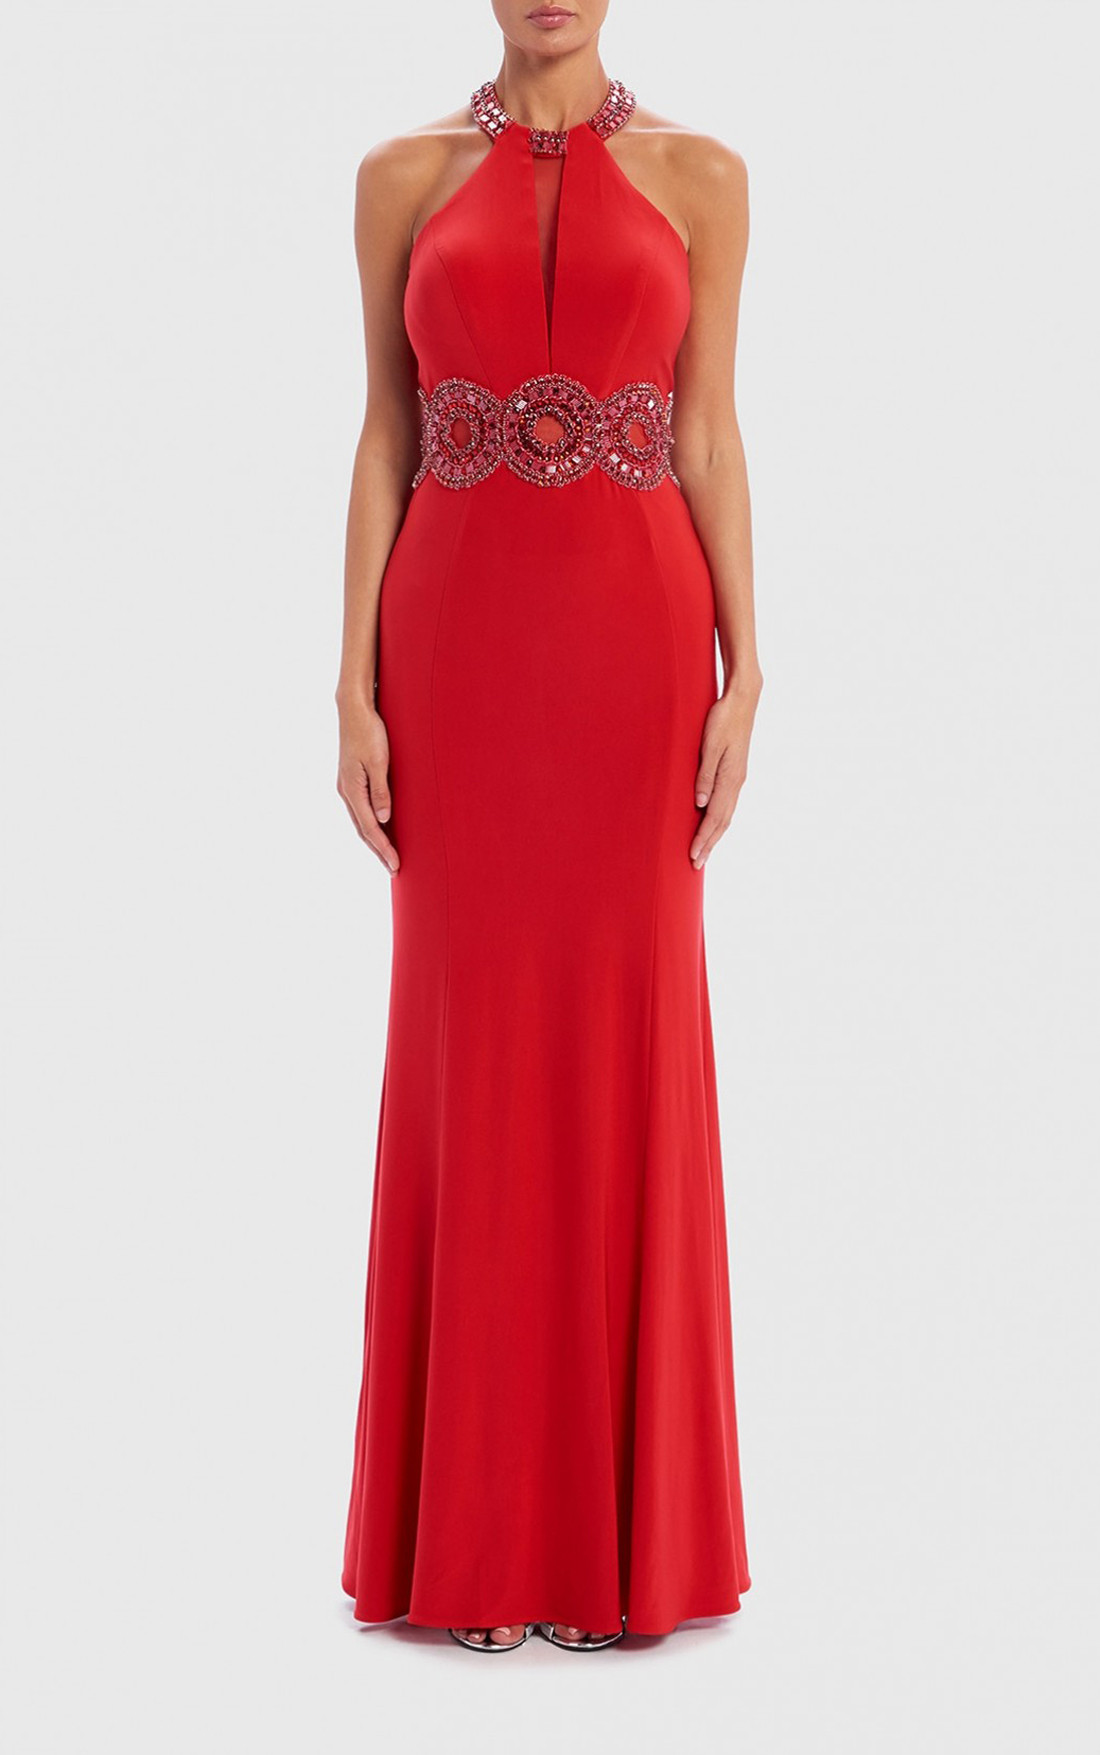 Forever Unique - Heidi Red Jewel Embellished Halter Maxi Evening Dress (AF0915)